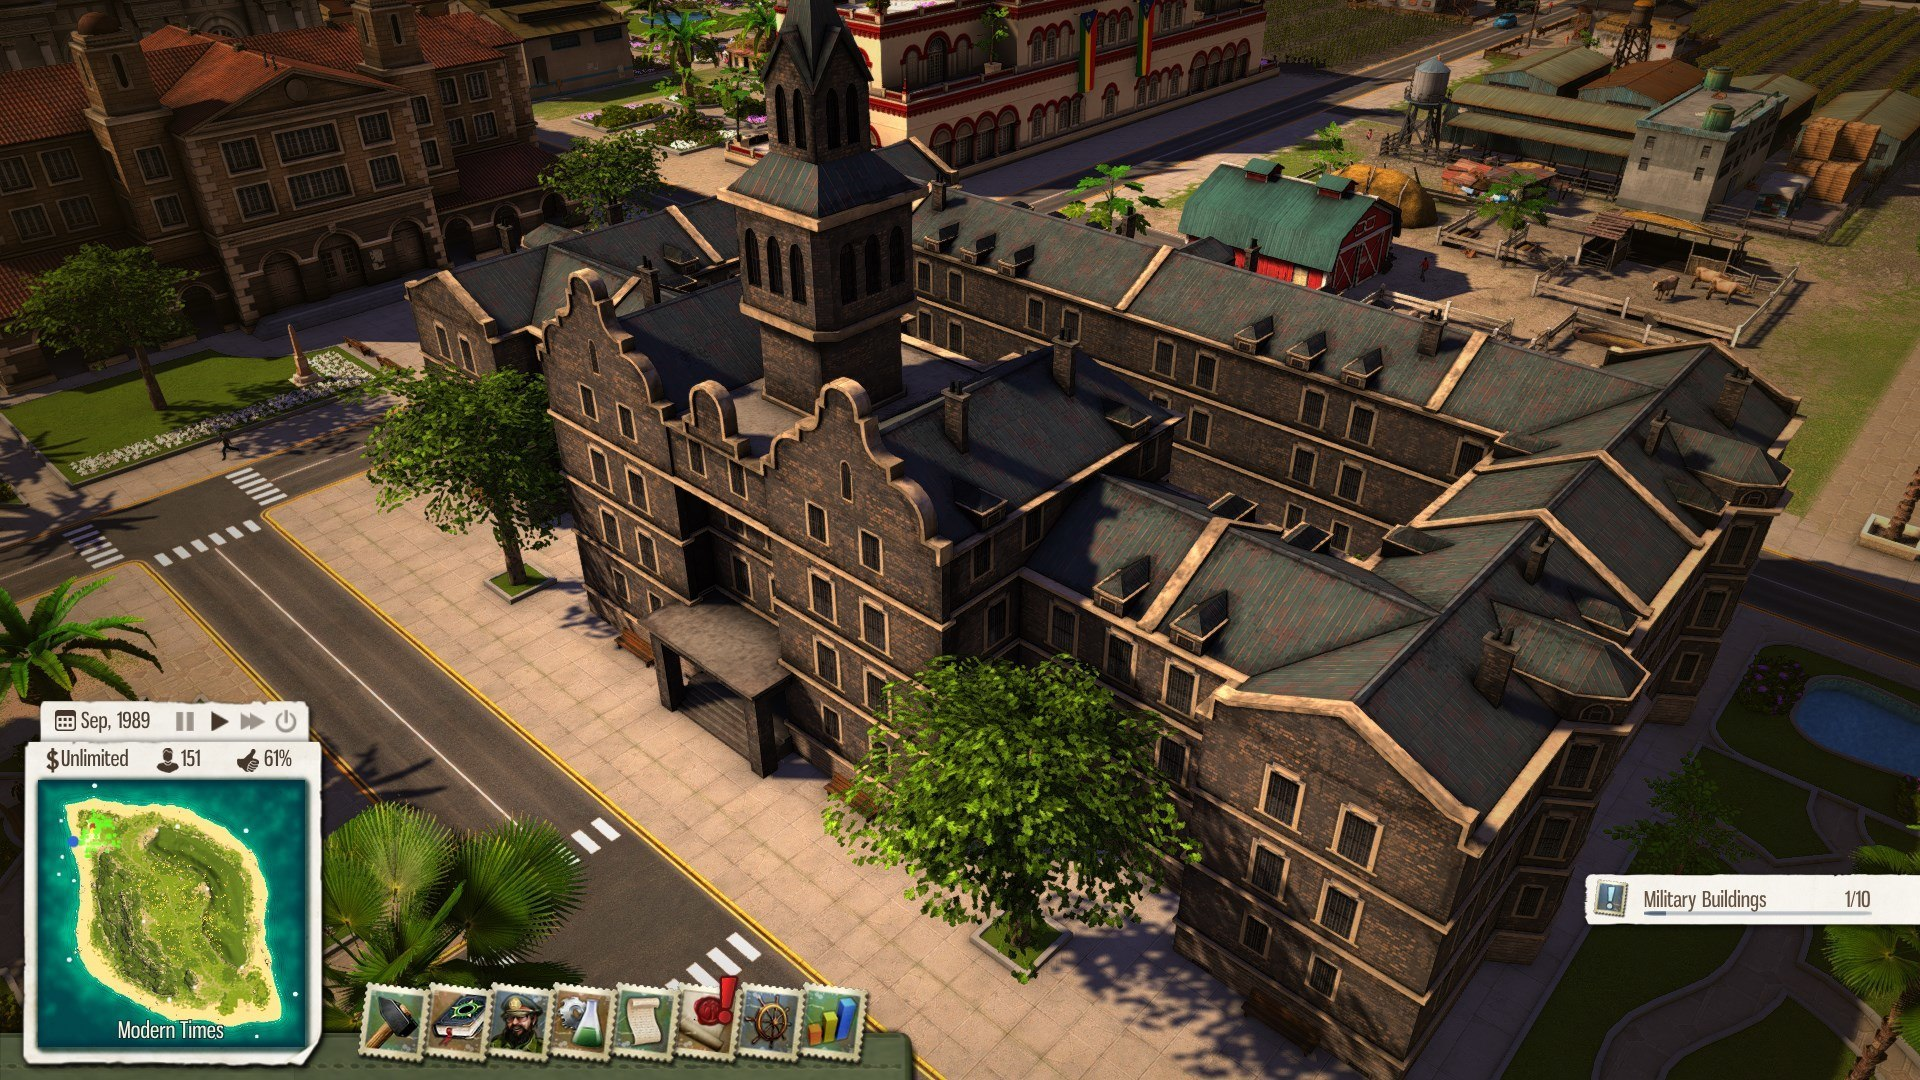 Gameplay screenshot of Tropico 5 showcasing gameplay from the modern times era